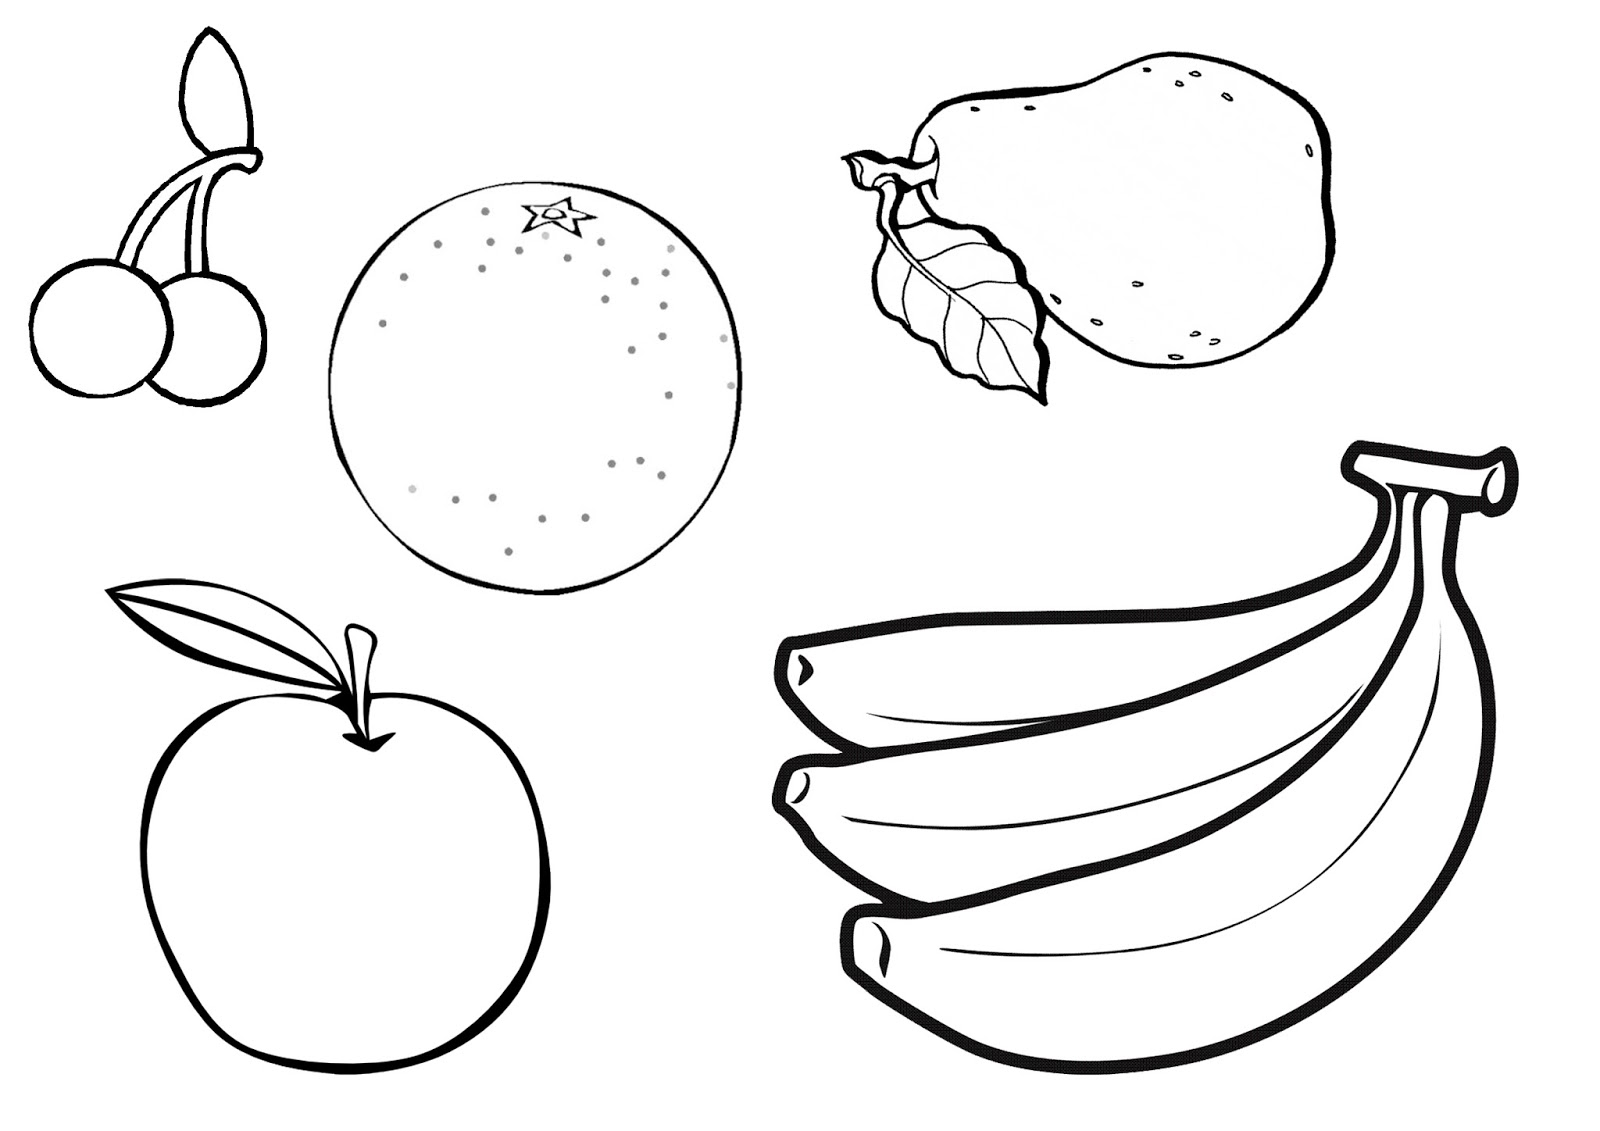 coloring images of fruits fruit coloring pages kidsuki images of fruits coloring